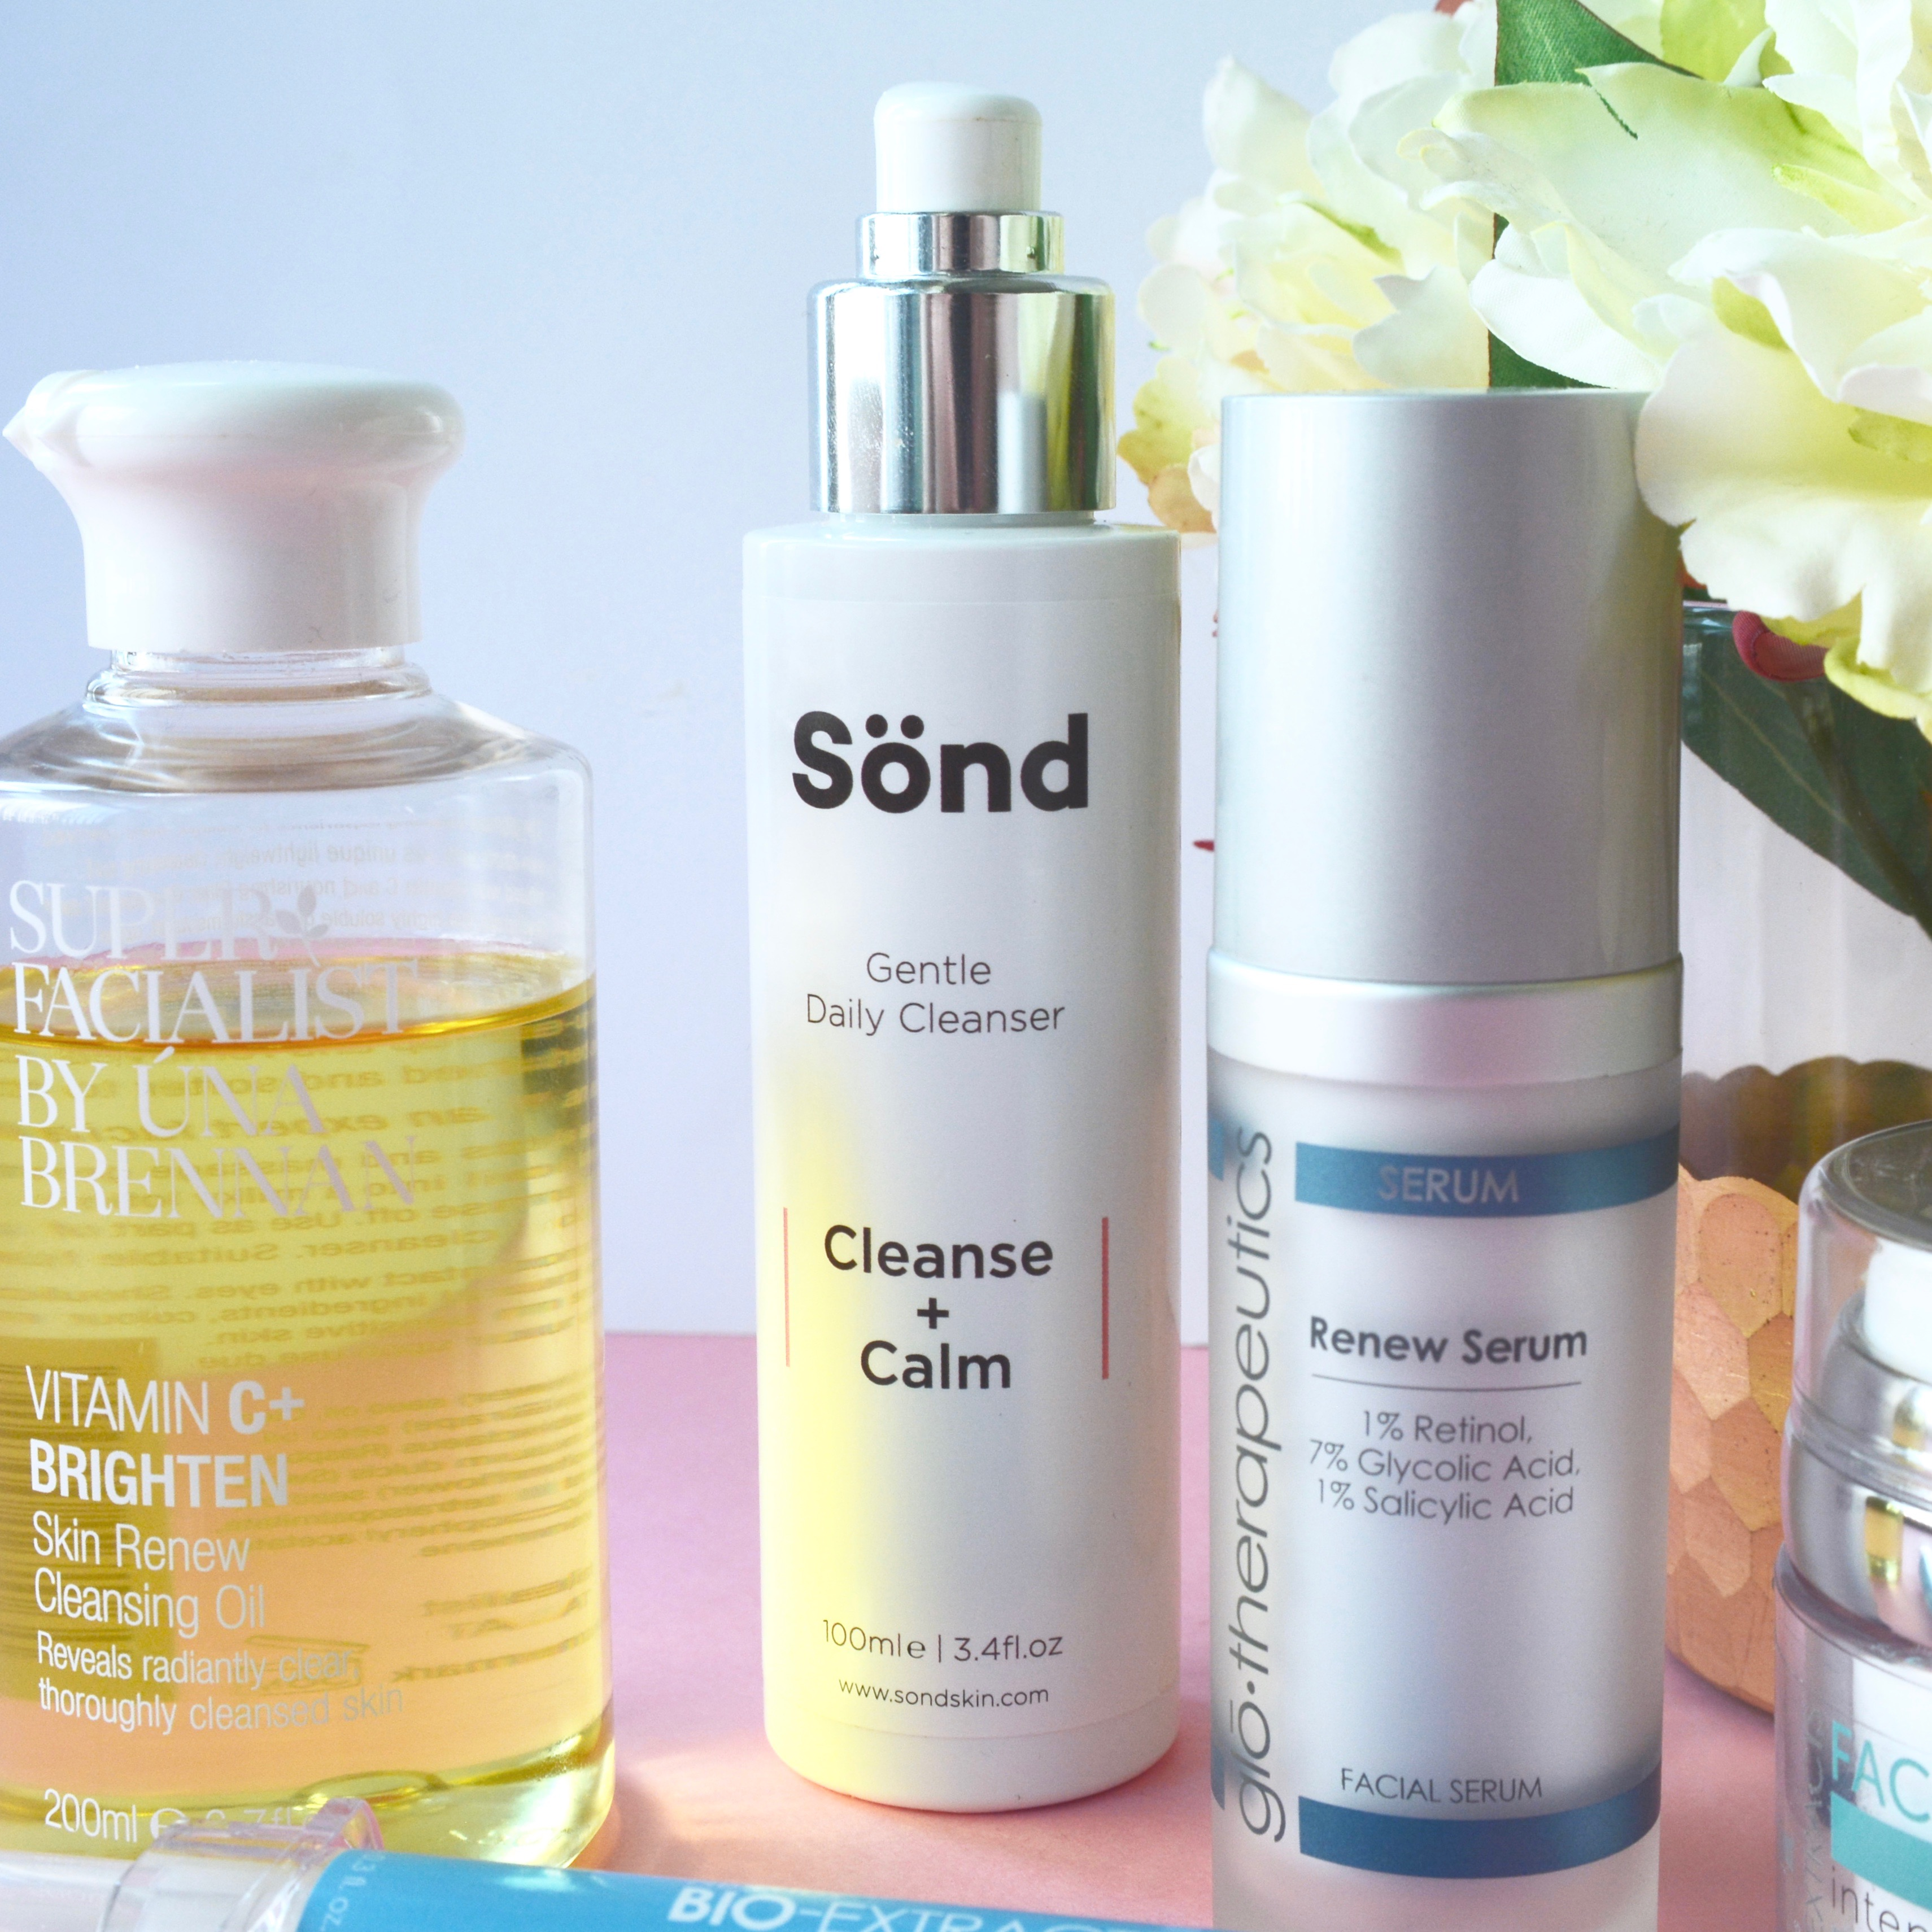 Skincare routine for rosacea/sensitive skin. Skincare Shake Up June '17: Sond cleanse and calm - Talonted Lex